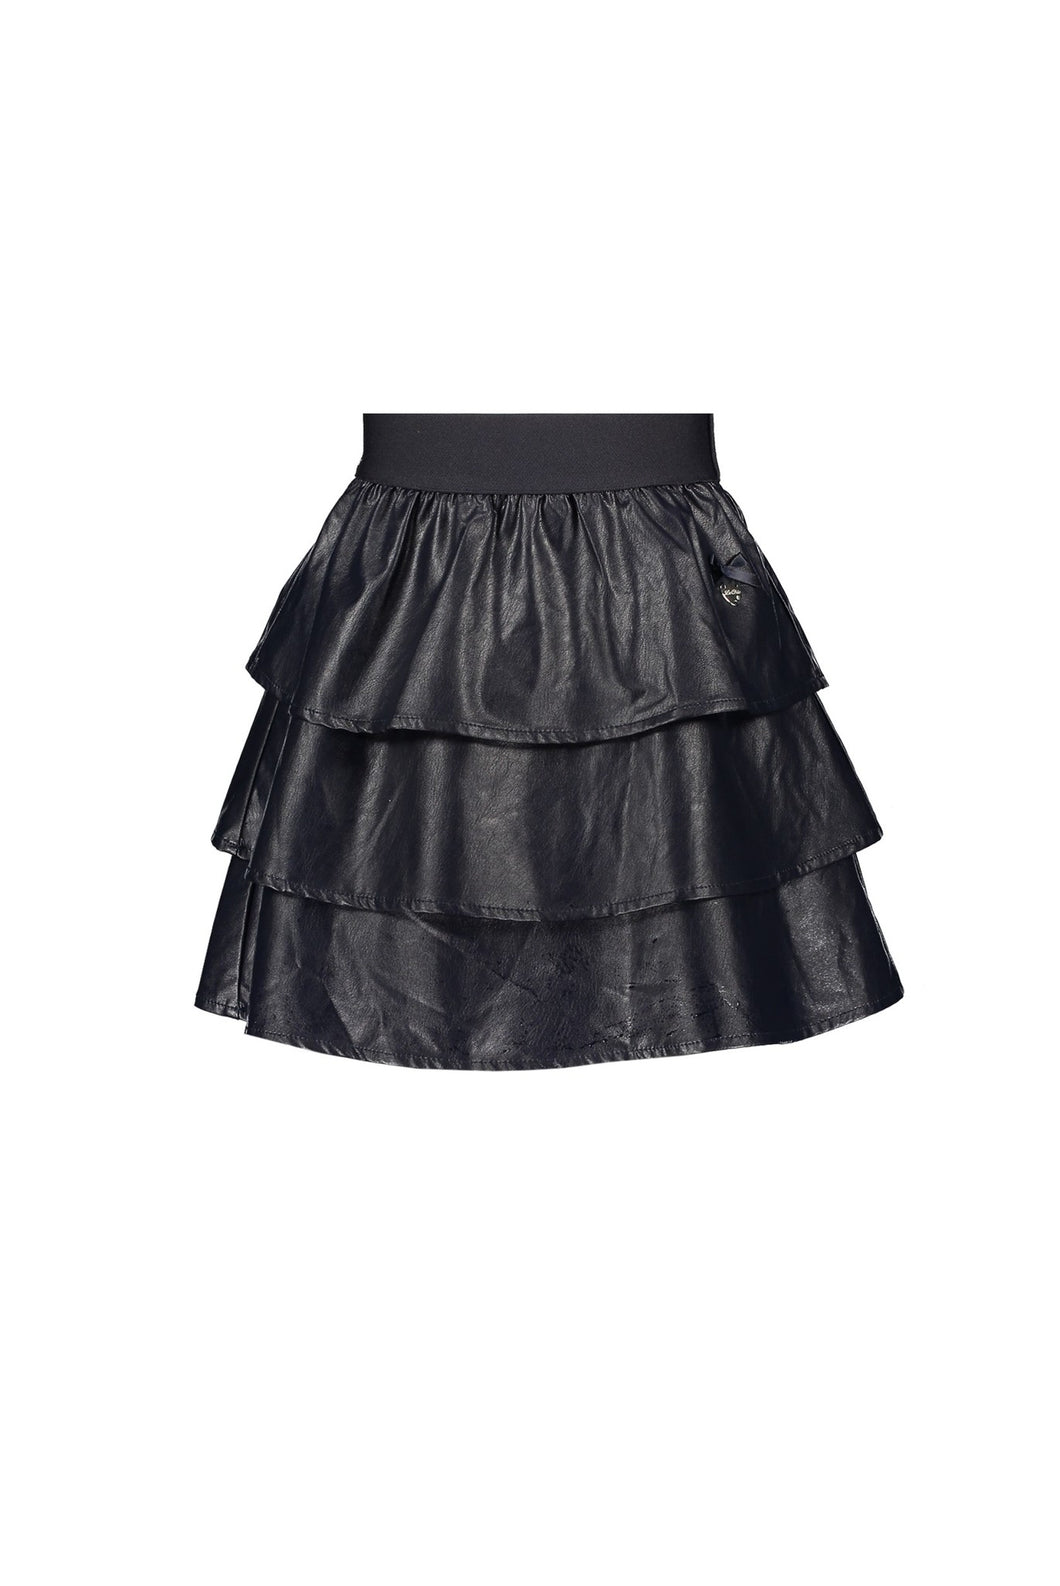 Le Chic Girls Navy Faux Leather Skirt